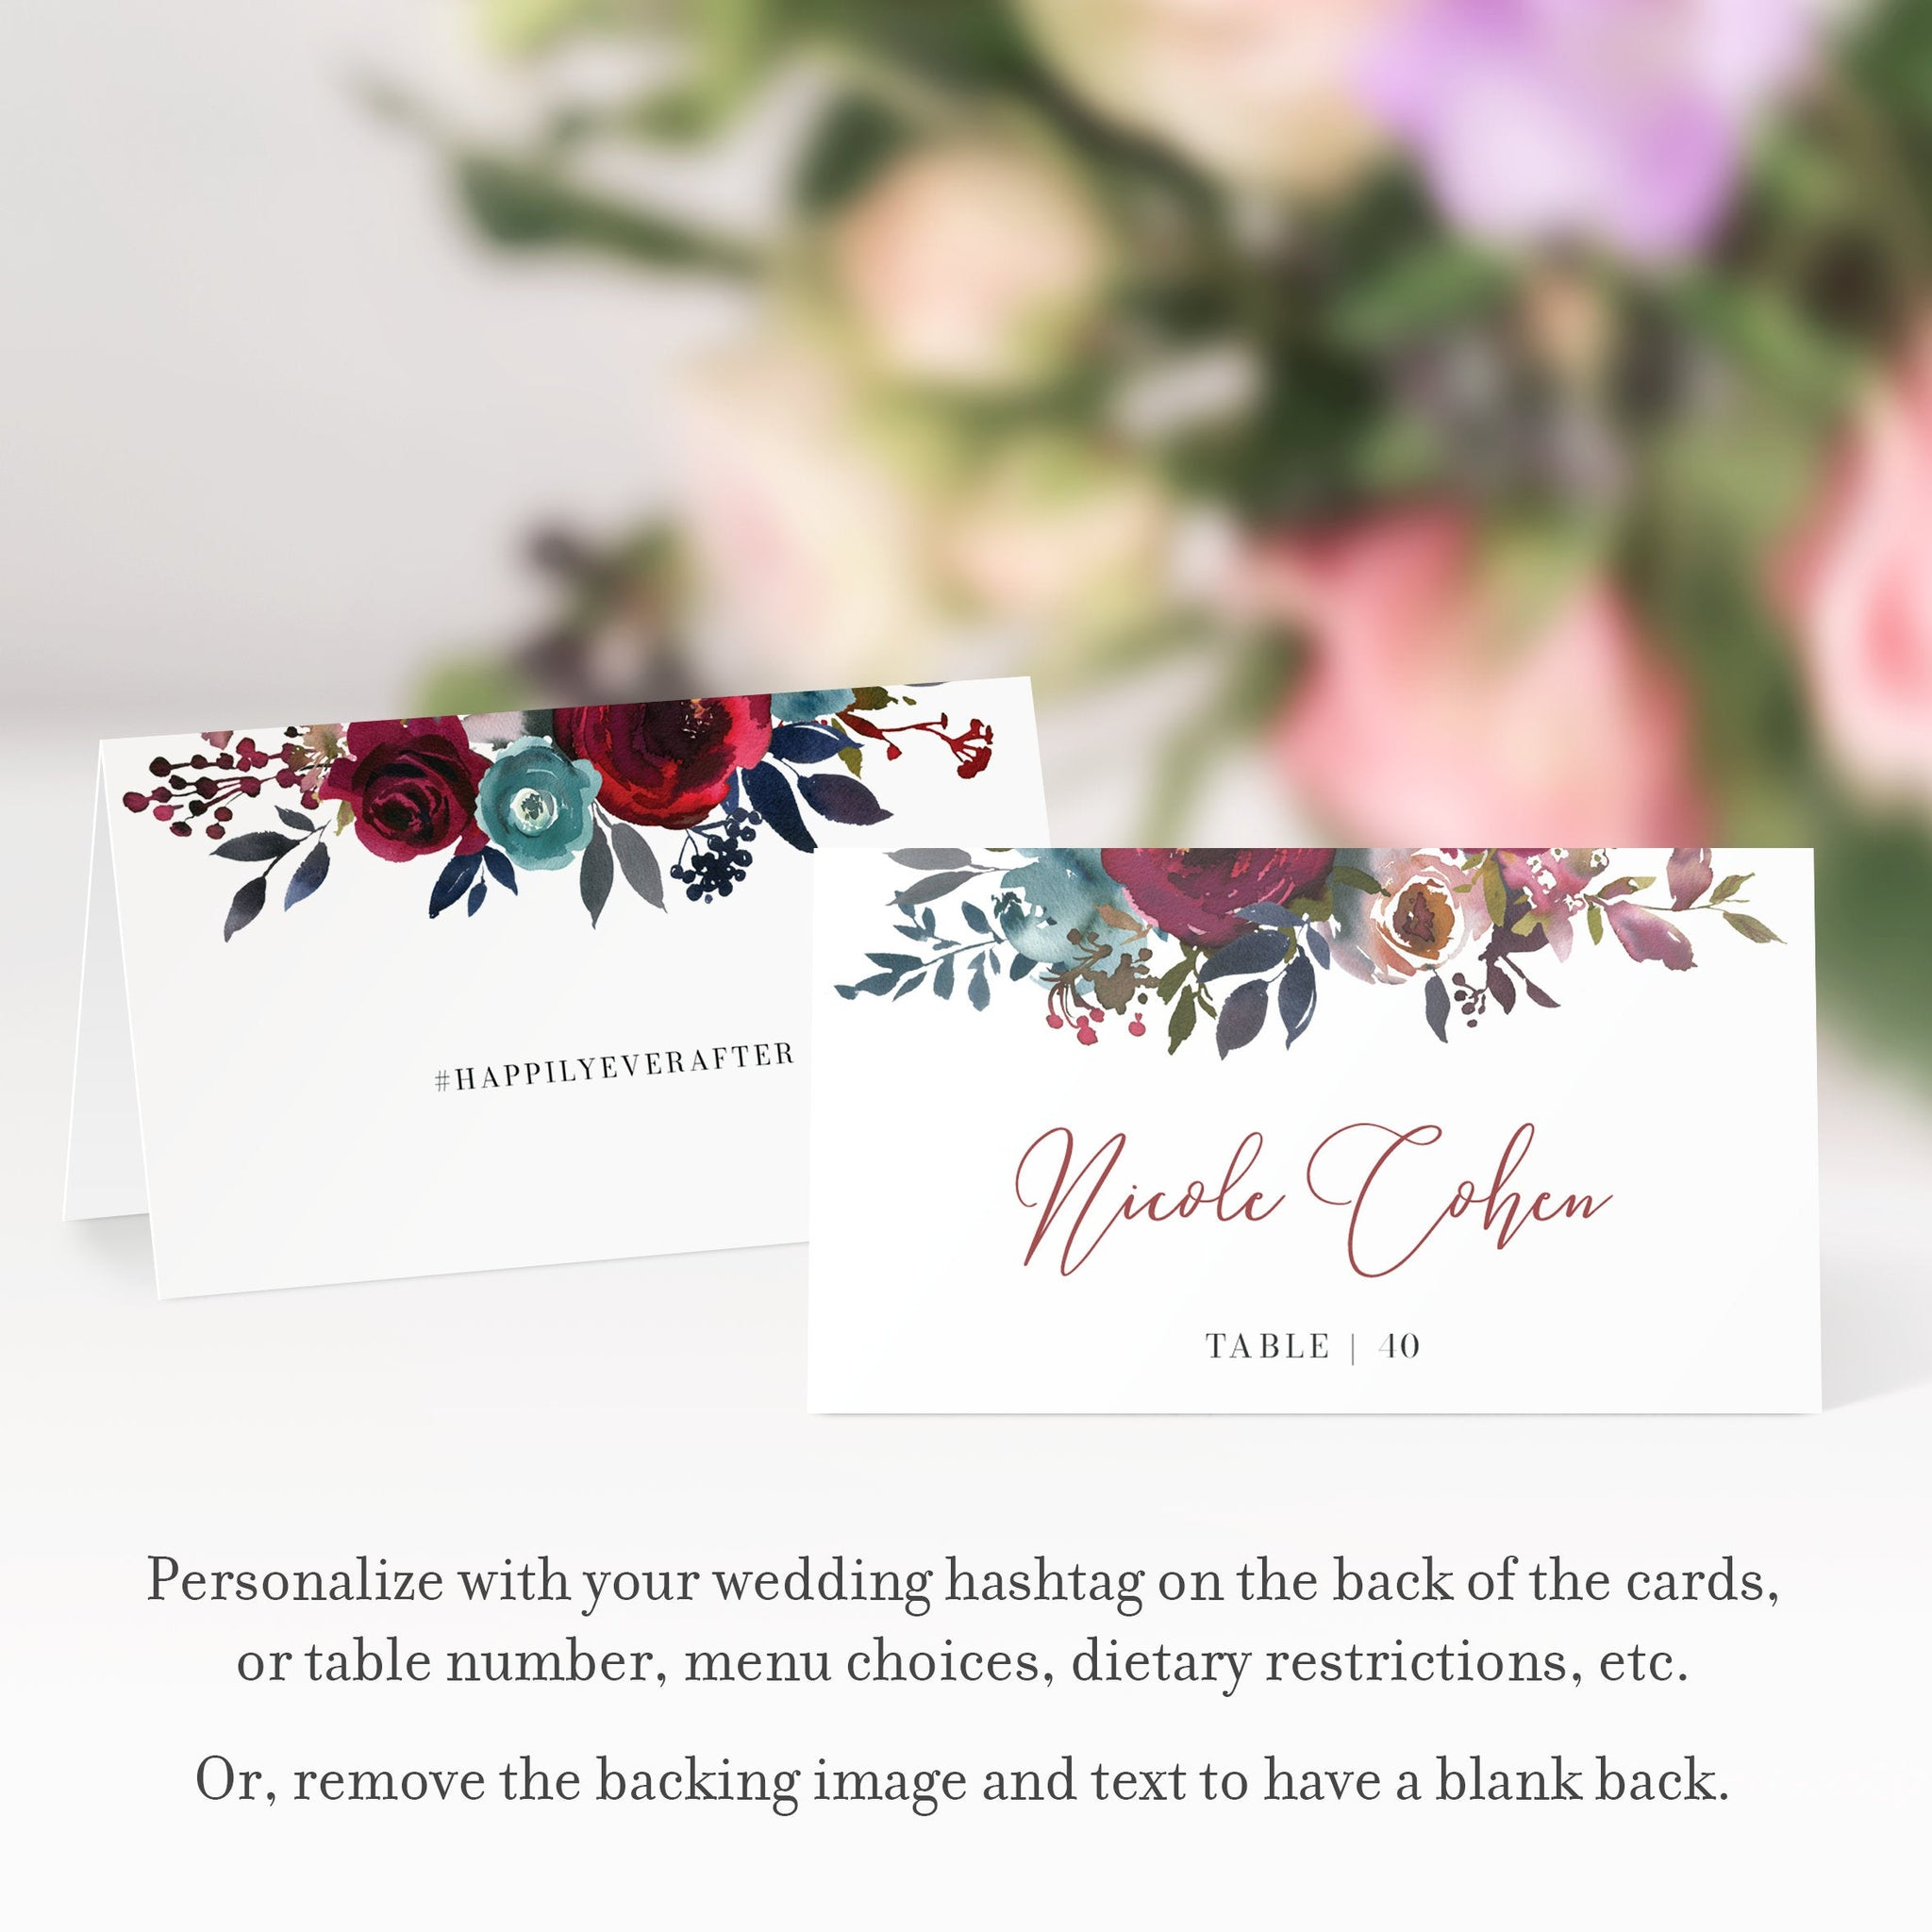 Burgundy and Navy Wedding Place Card Template, Personalized Wedding Name Cards, Printable Place Cards, DIGITAL DOWNLOAD - BB100